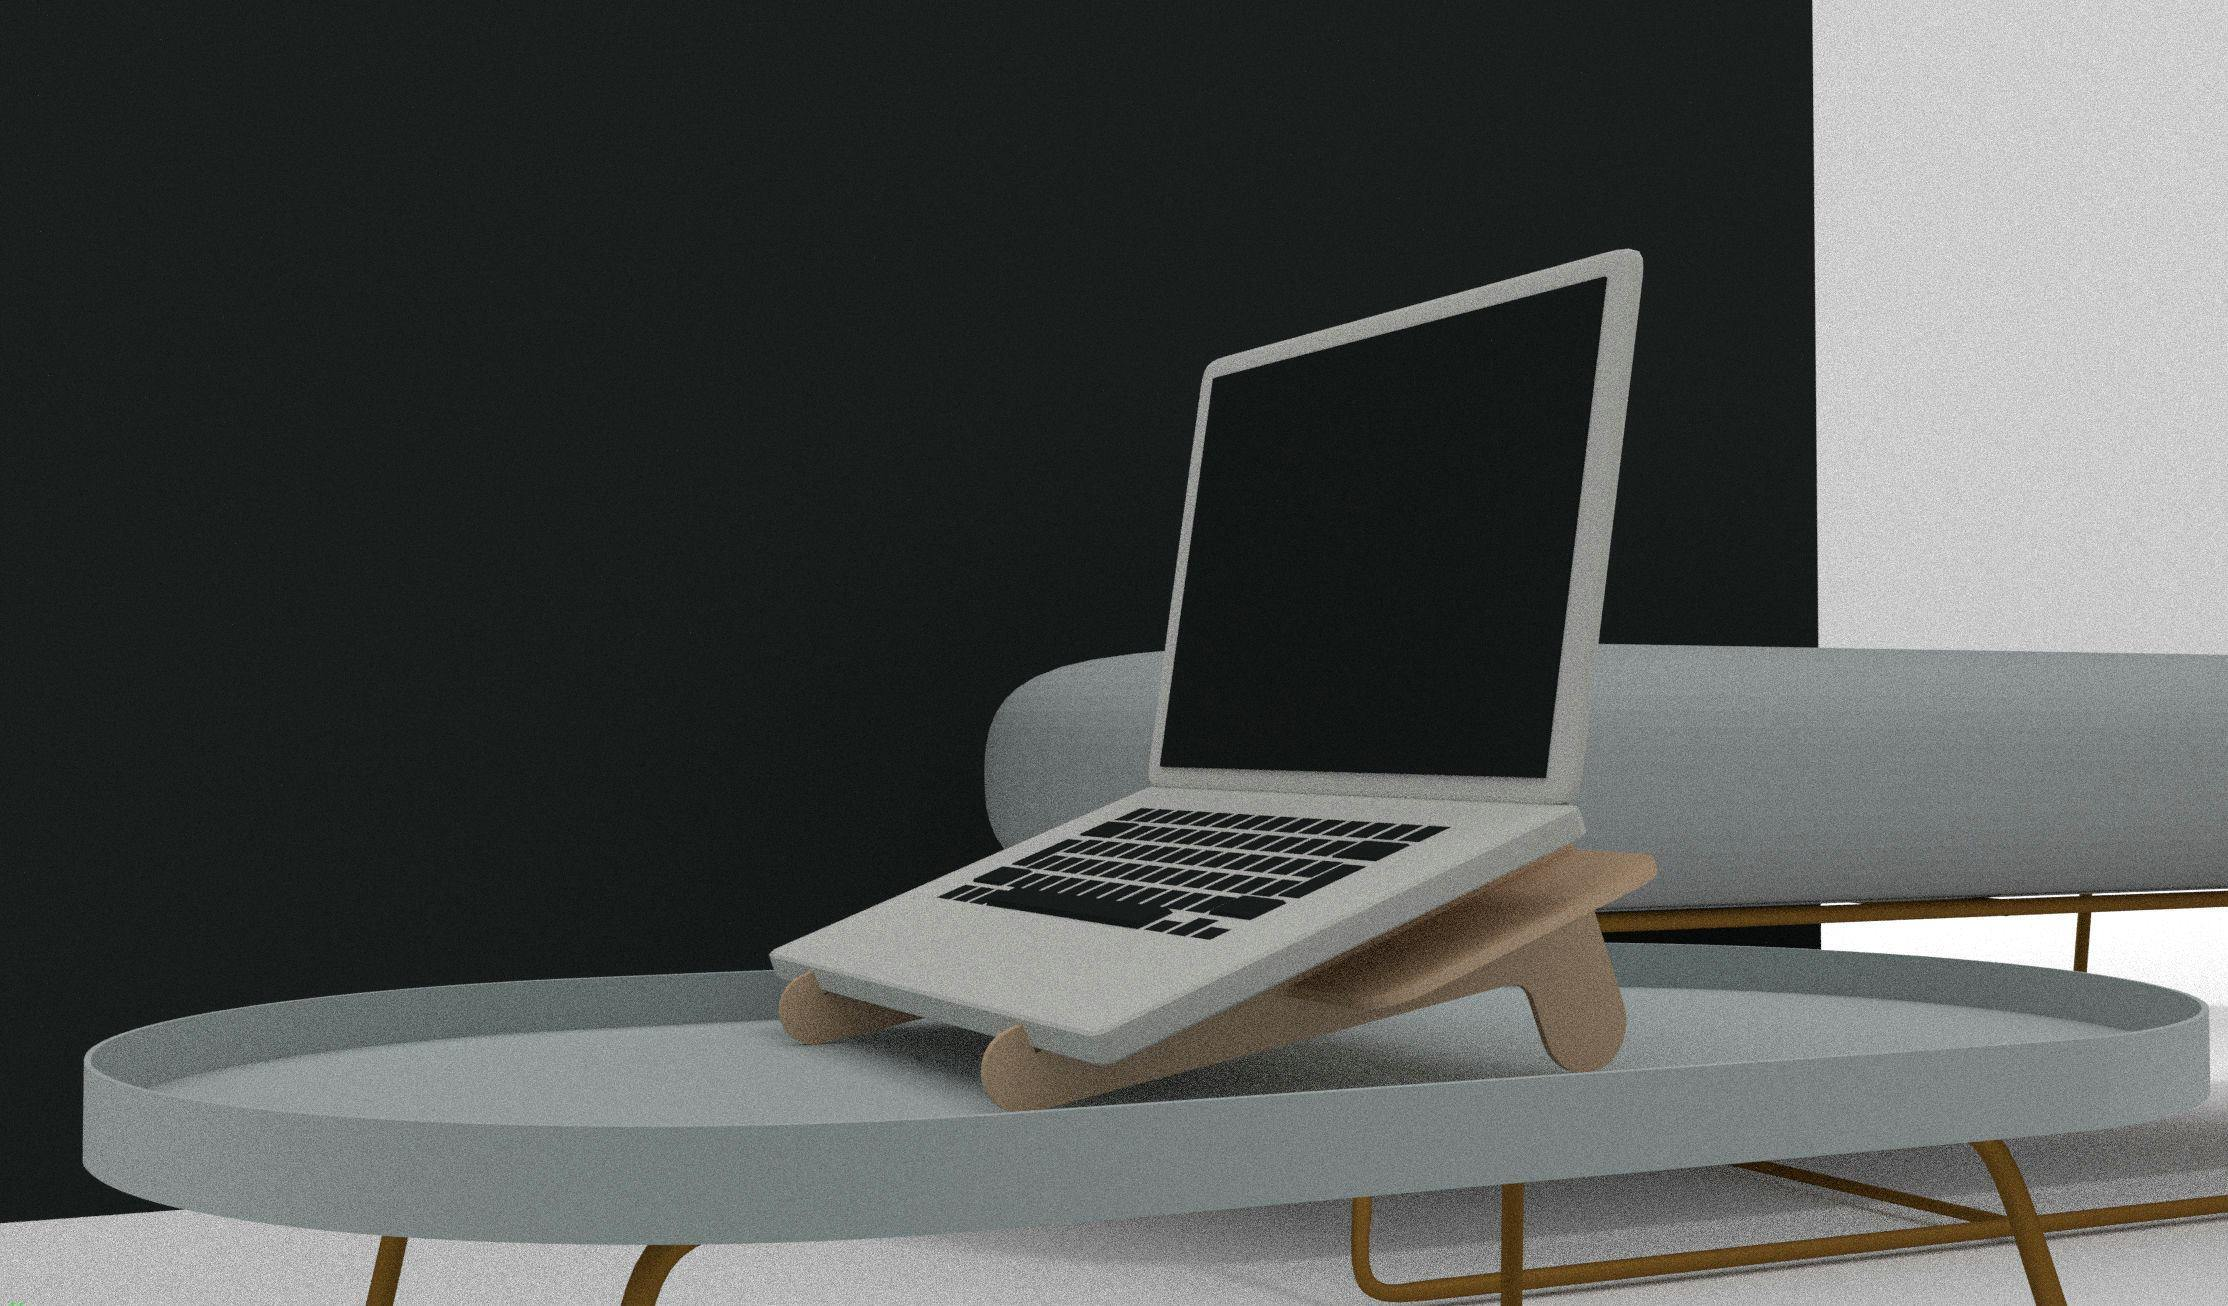 Portable Plywood Laptop Stand - skleia - custom size plywood furniture - handmade ergonomic ecologic plywood furniture